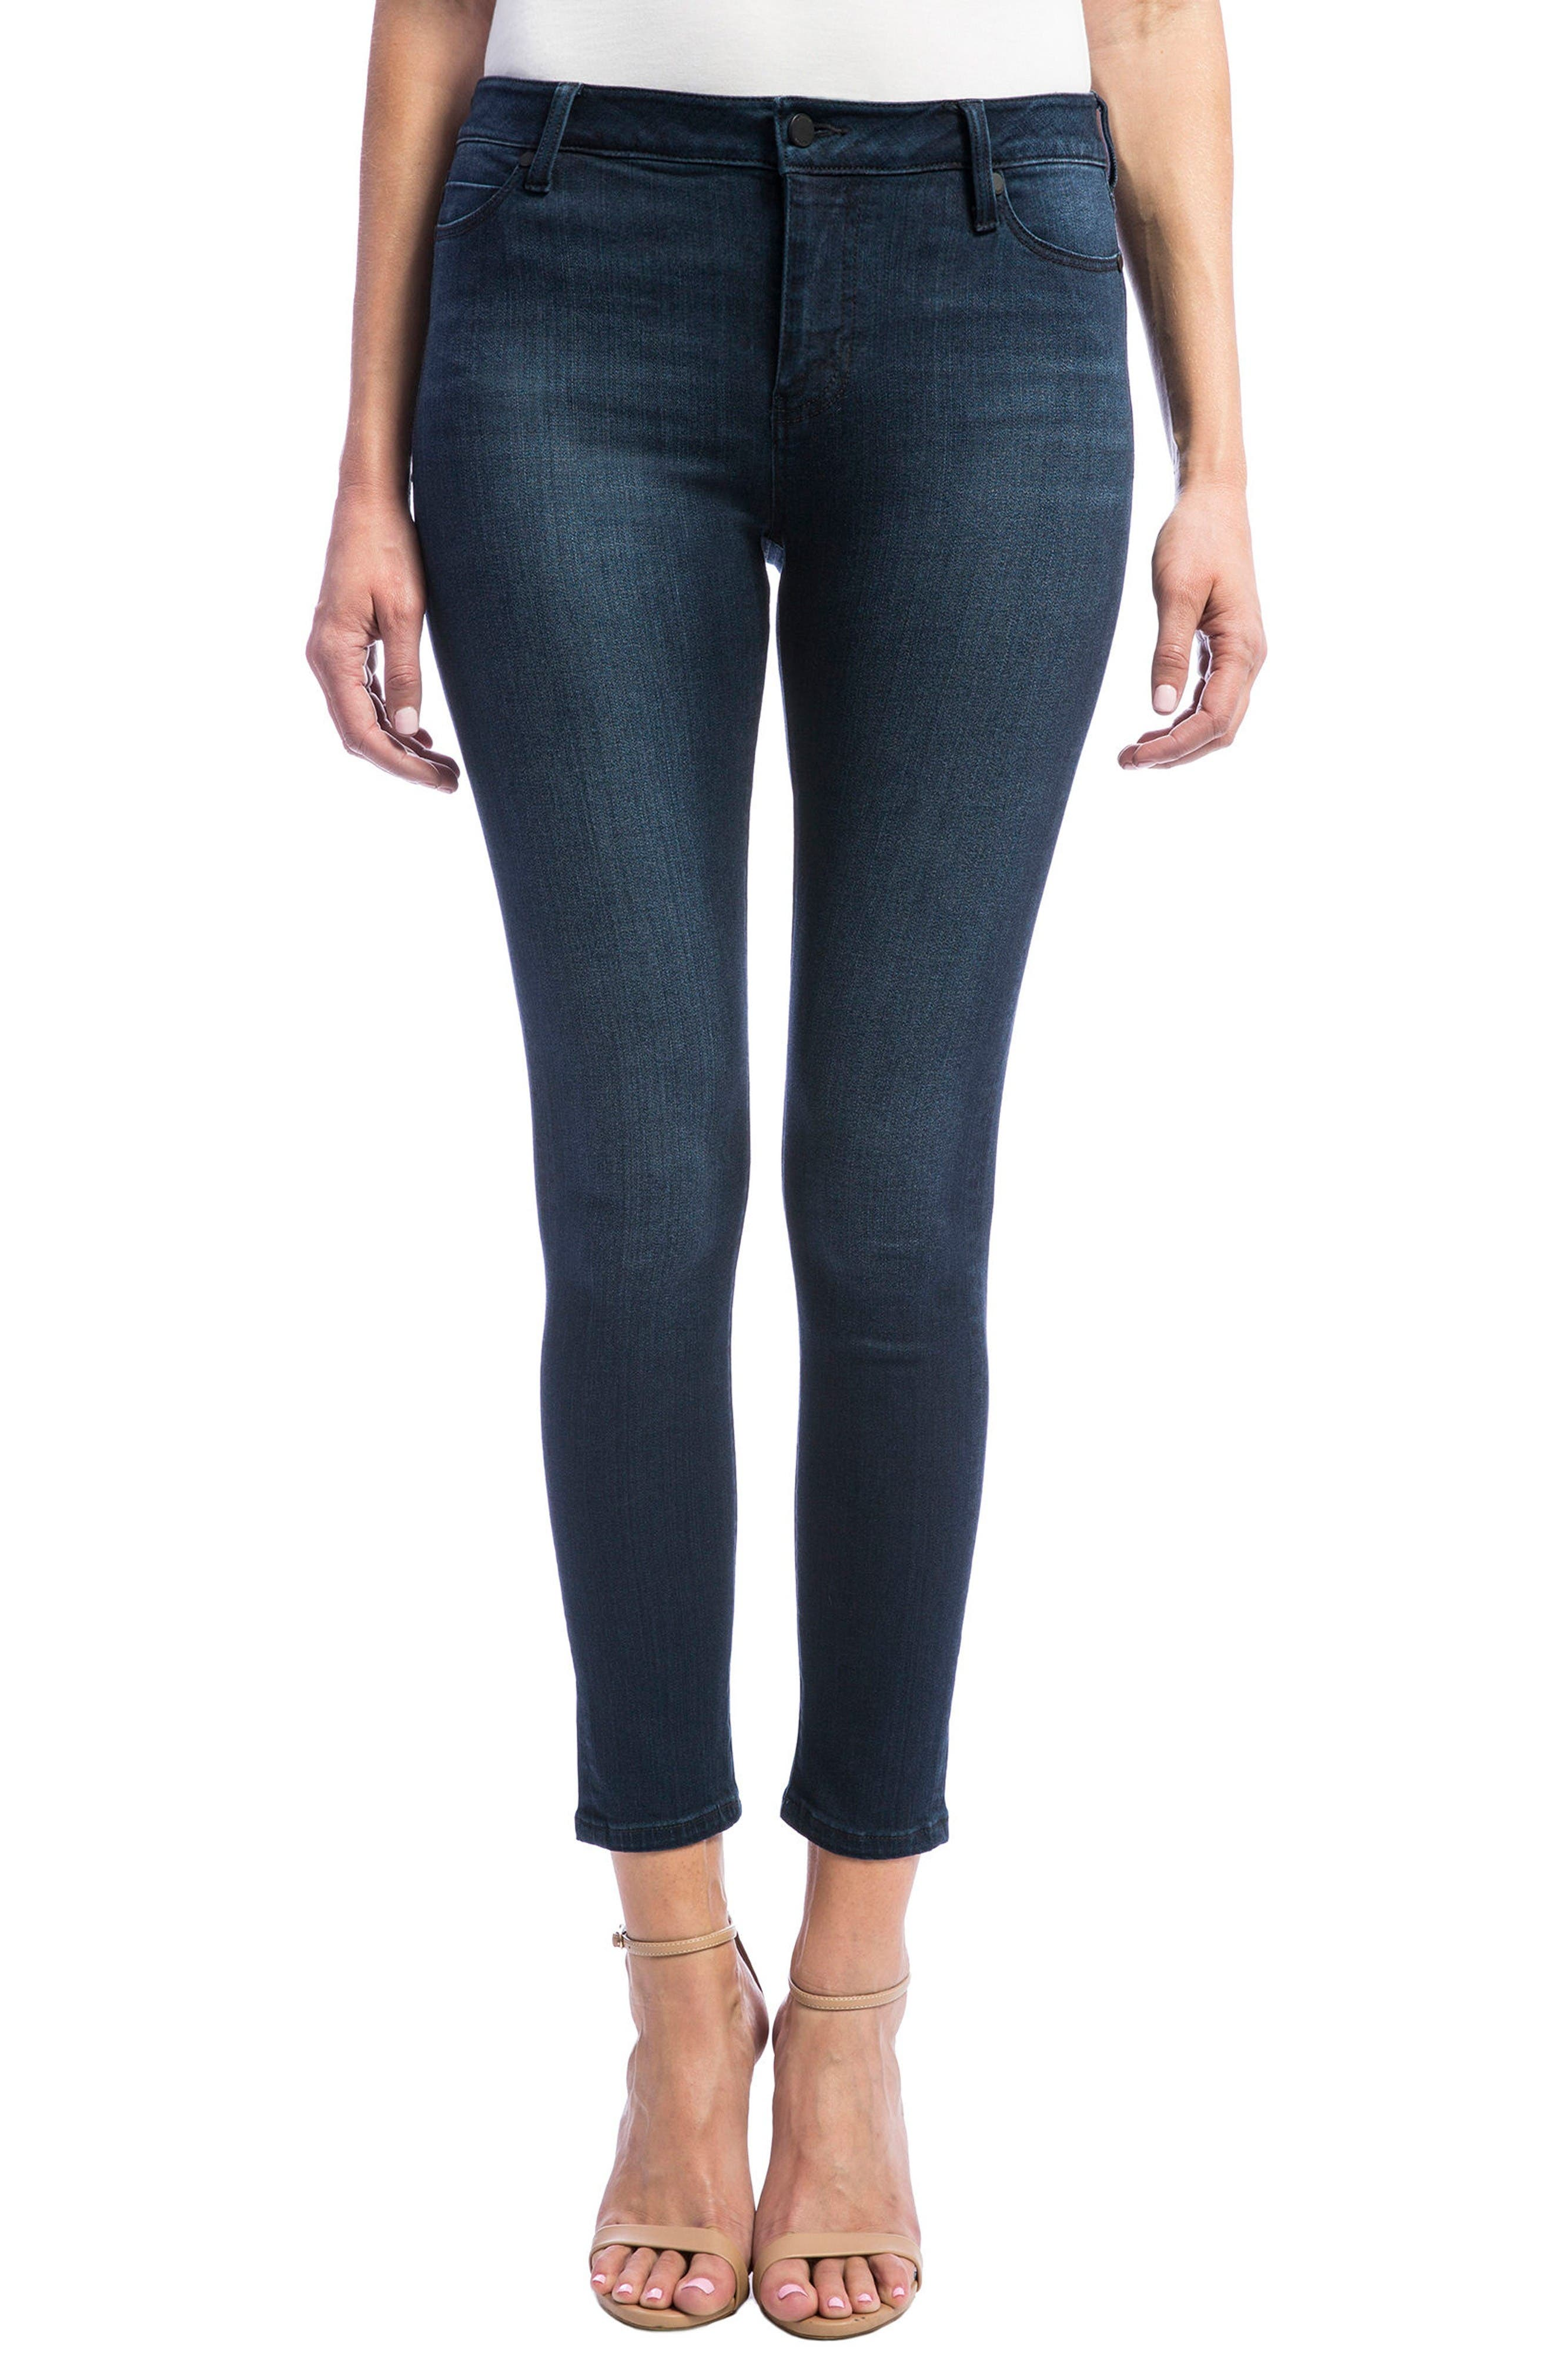 LIVERPOOL JEANS COMPANY High Rise Stretch Ankle Skinny Jeans